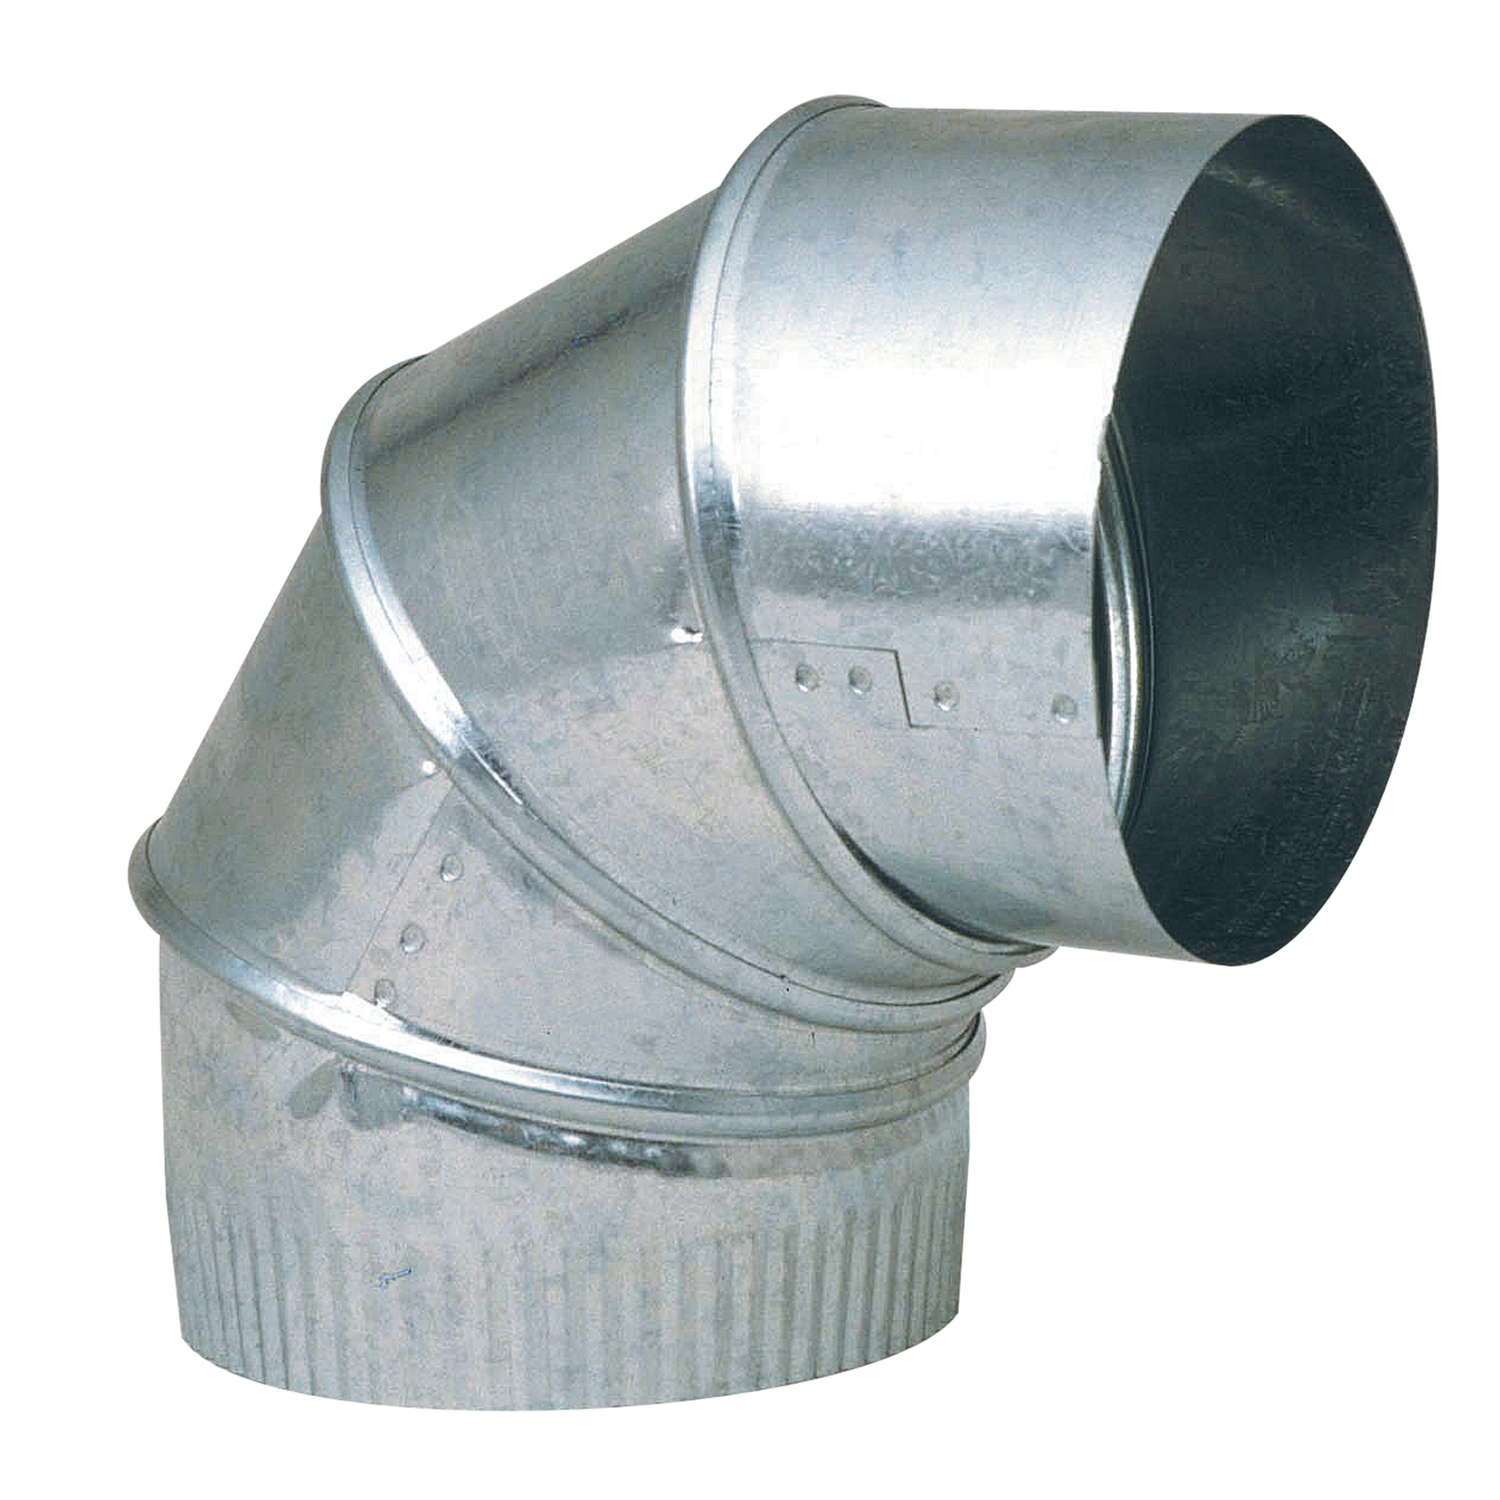 Imperial Manufacturing  3 in. Dia. x 3 in. Dia. Adjustable 90 deg. Galvanized SteelSteel  Stove Pipe